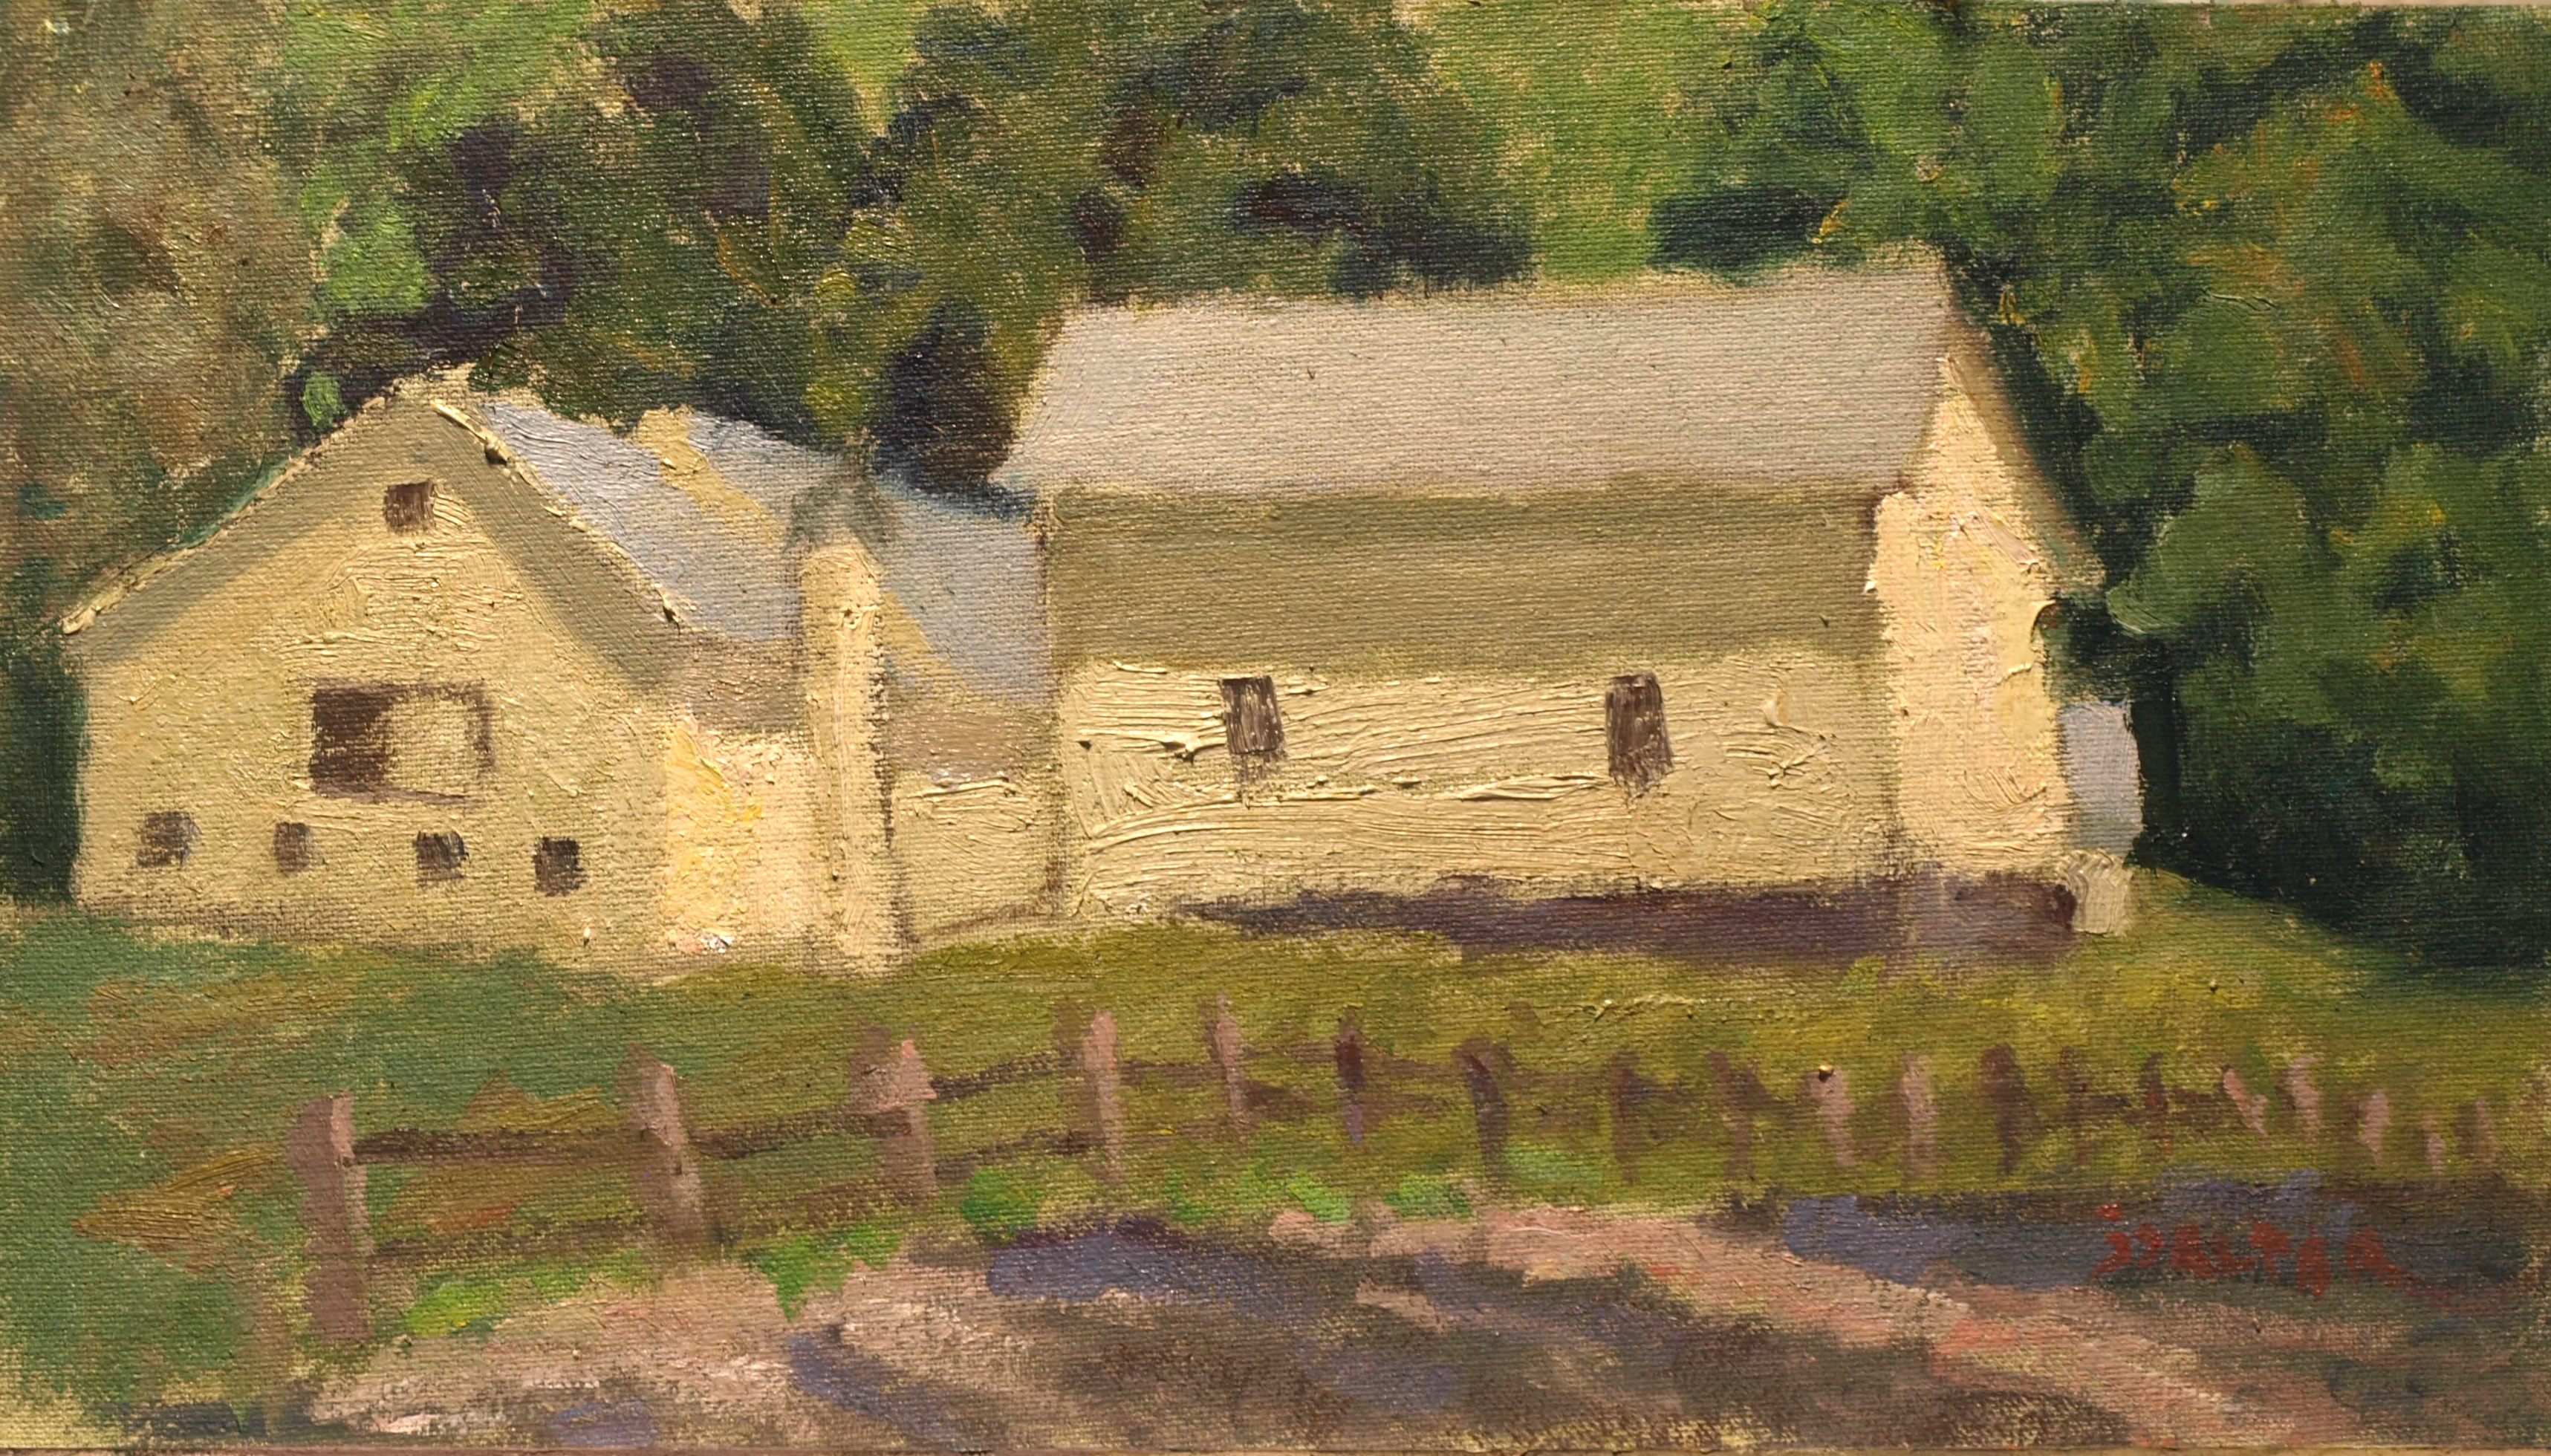 Yellow Barns - Afternoon, Oil on Canvas on Panel, 8 x 14 Inches, by Richard Stalter, $225